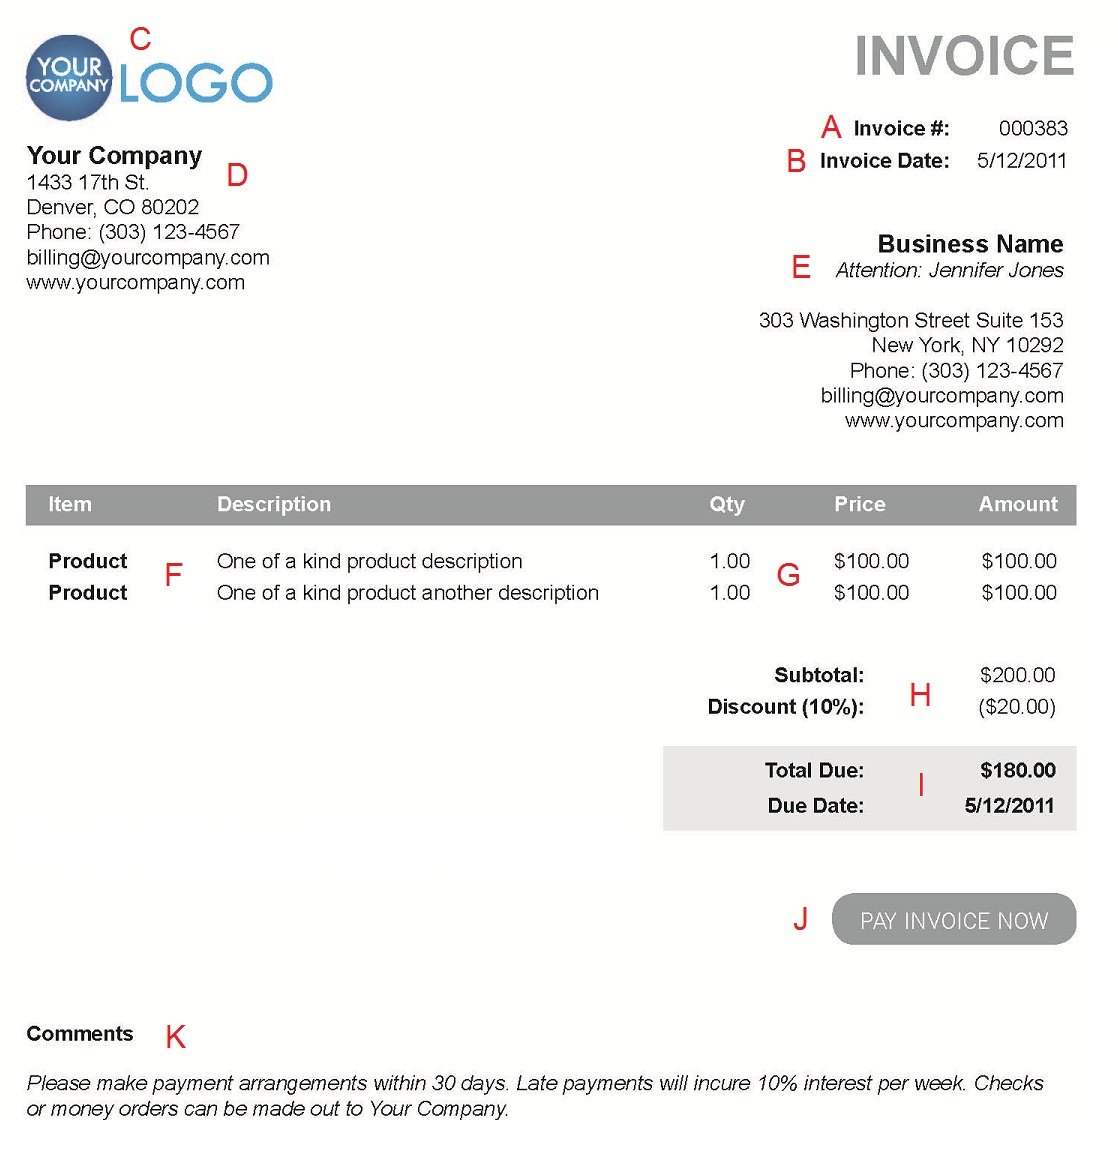 Ultrablogus  Nice The  Different Sections Of An Electronic Payment Invoice With Interesting A  With Extraordinary Non Payment Of Invoices Also Invoice Template Uk Word In Addition Free Invoice Program Download And Free Invoice Creator Software As Well As Good Invoice Template Additionally Sample Invoice Format In Word From Paysimplecom With Ultrablogus  Interesting The  Different Sections Of An Electronic Payment Invoice With Extraordinary A  And Nice Non Payment Of Invoices Also Invoice Template Uk Word In Addition Free Invoice Program Download From Paysimplecom